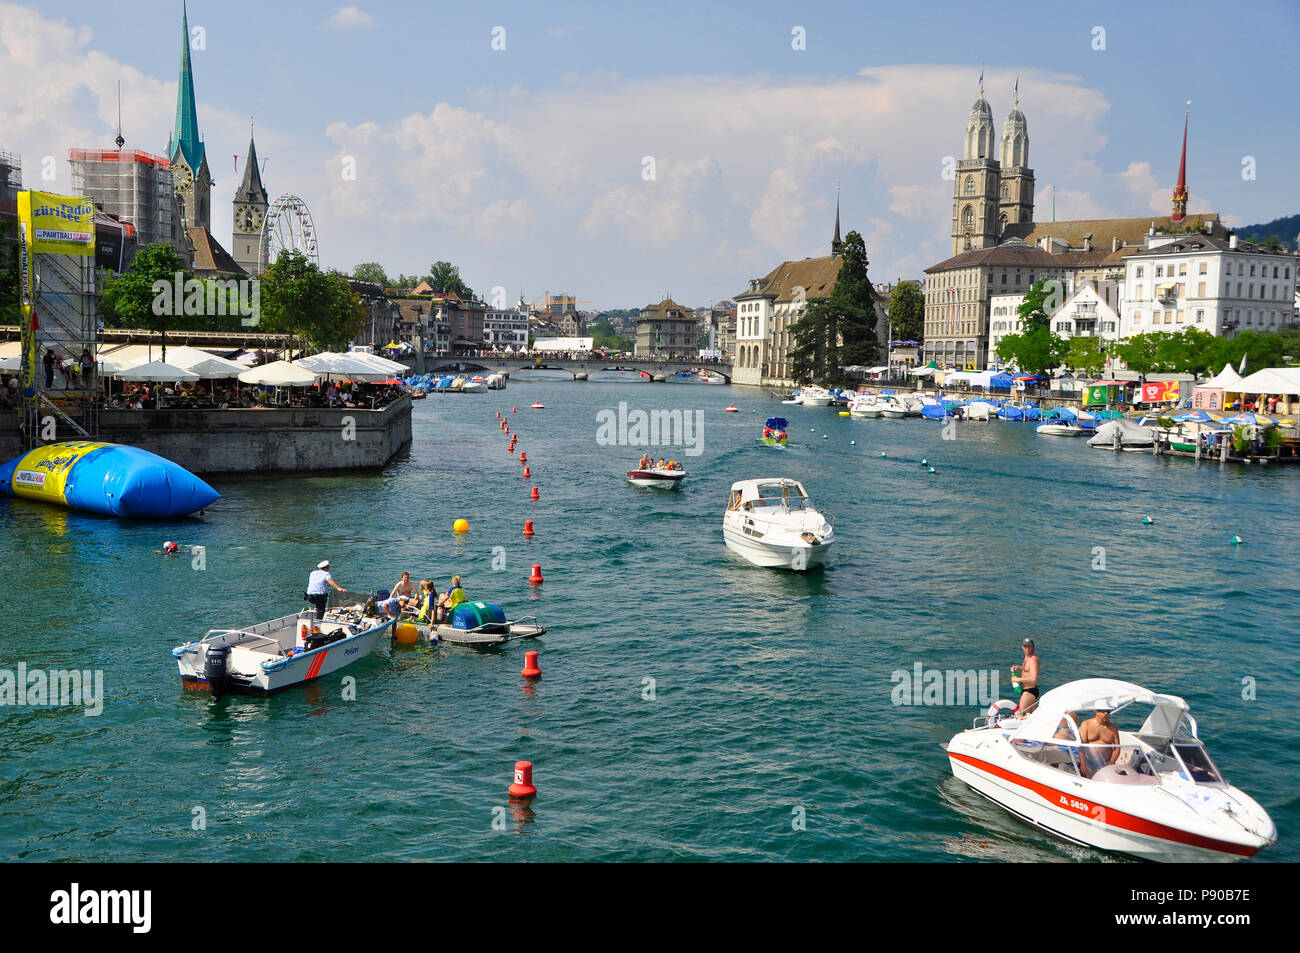 Many boats are on the Limmat-River at Switzerlands biggest party - the Züri-Fäscht. - Stock Image